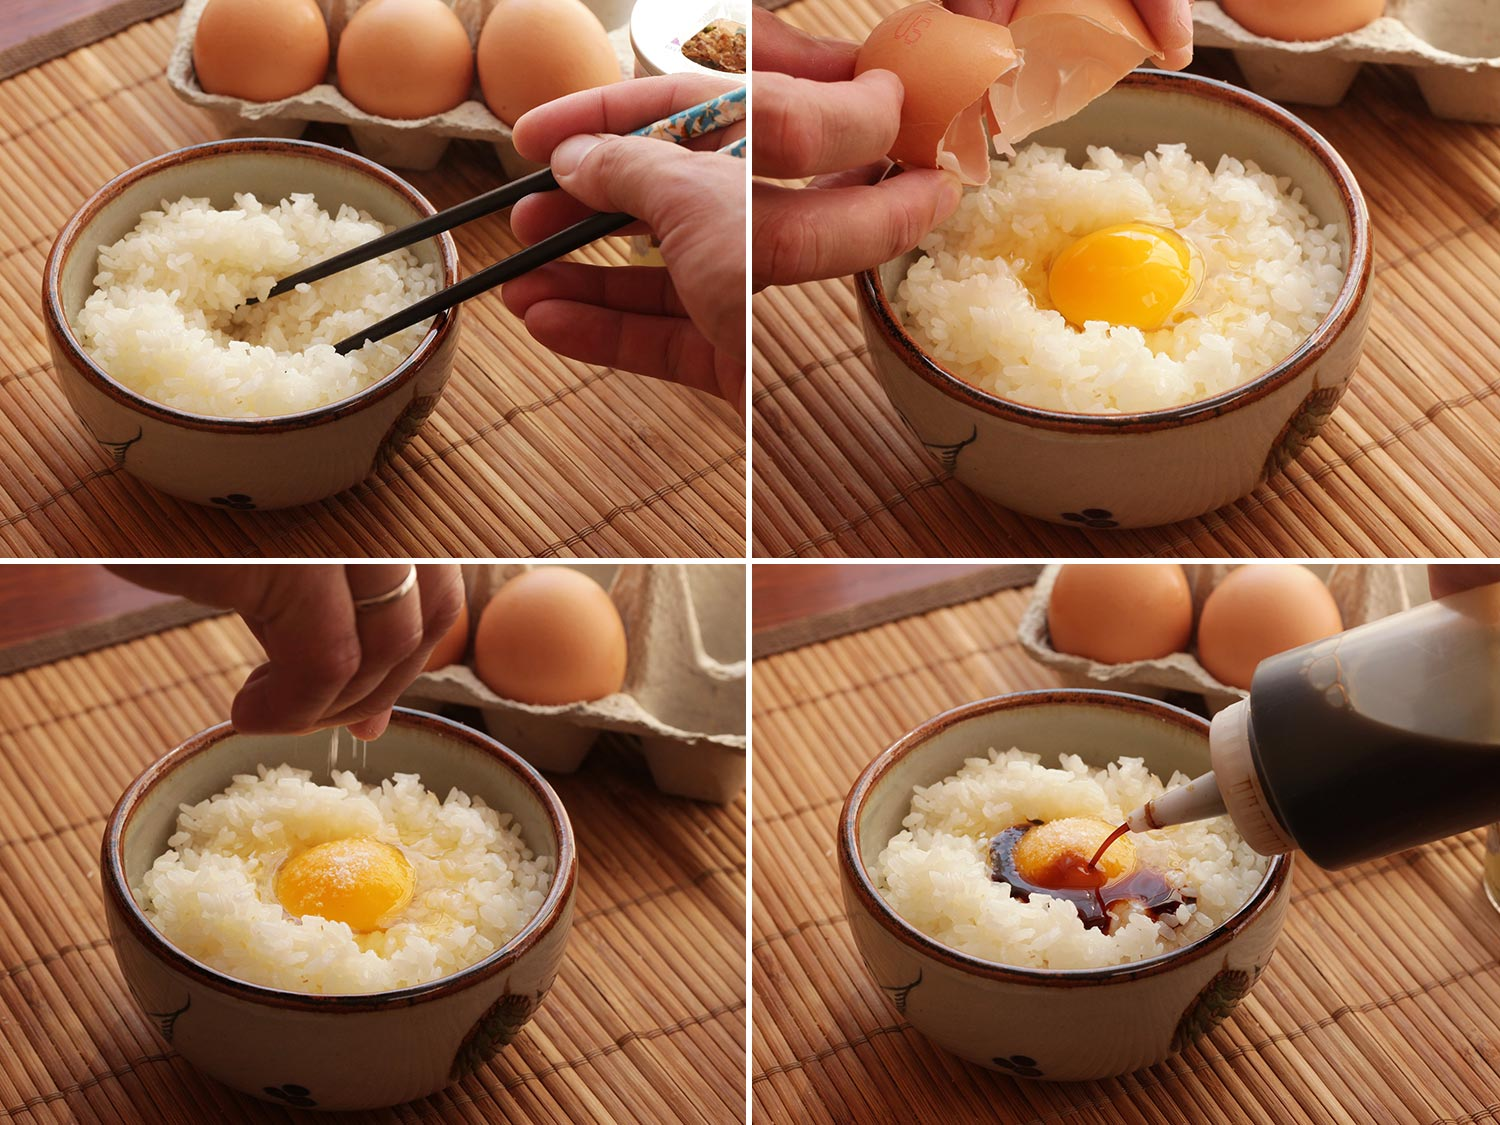 6 Awesome Raw Egg Dishes In Japanese Cuisine  Tokyo Creative-7592